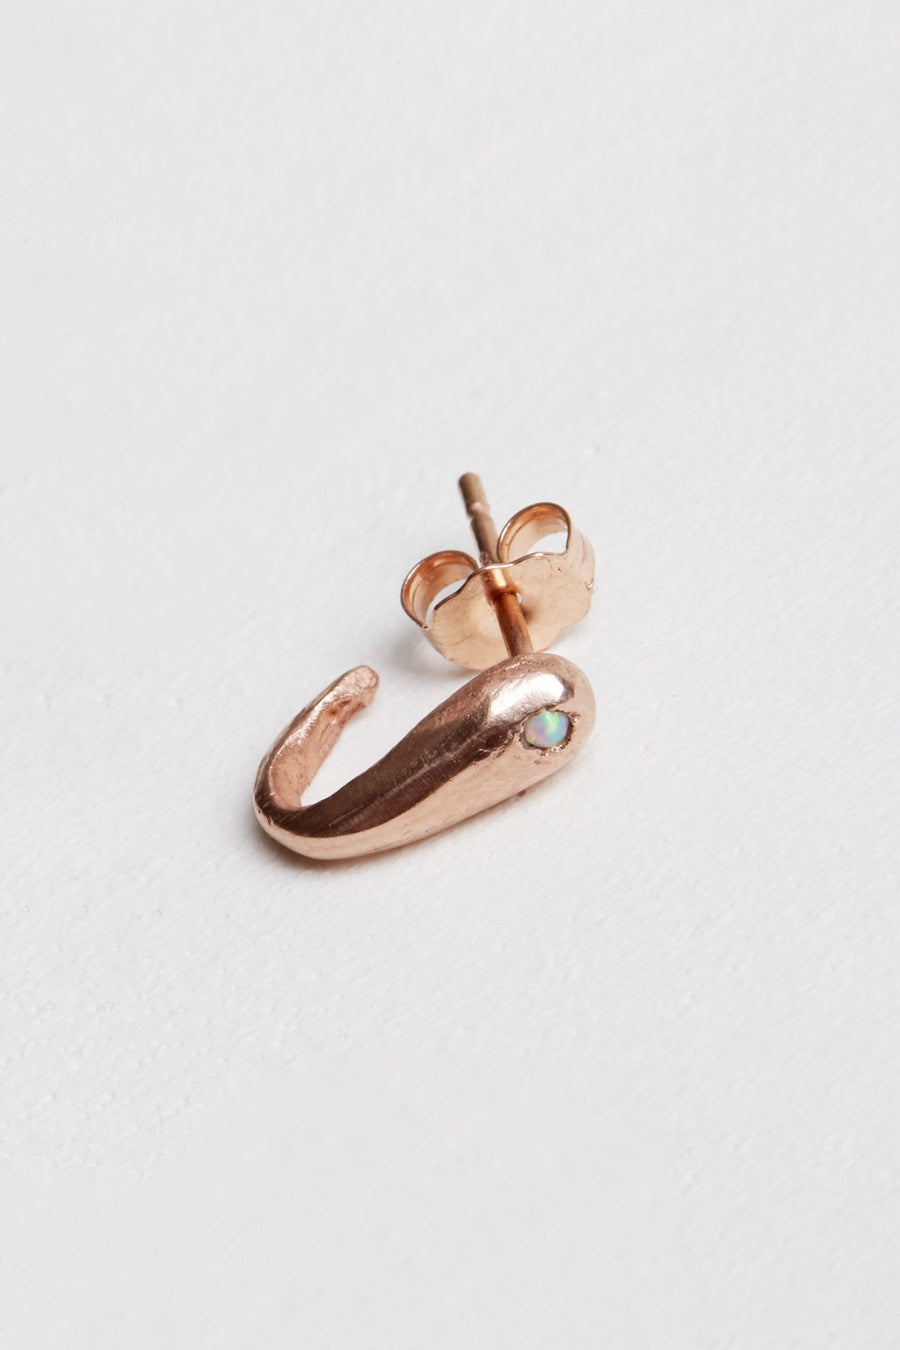 Laurel Patrick Single Tusk Ear Cuff in Rose Gold